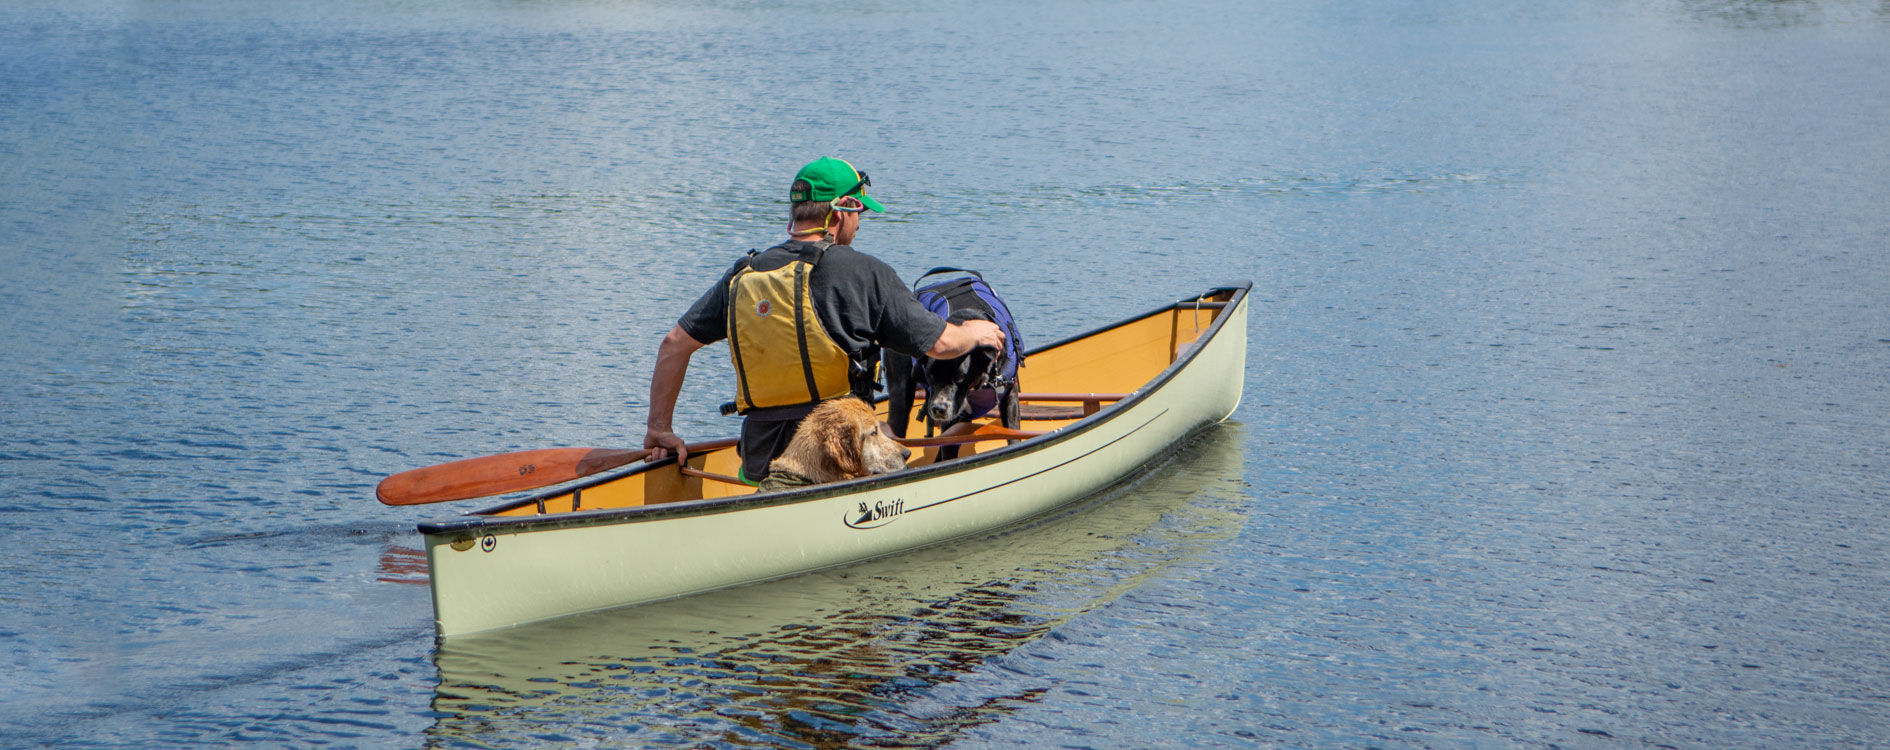 Spring Swift Canoe Sale - Algonquin Outfitters - Your